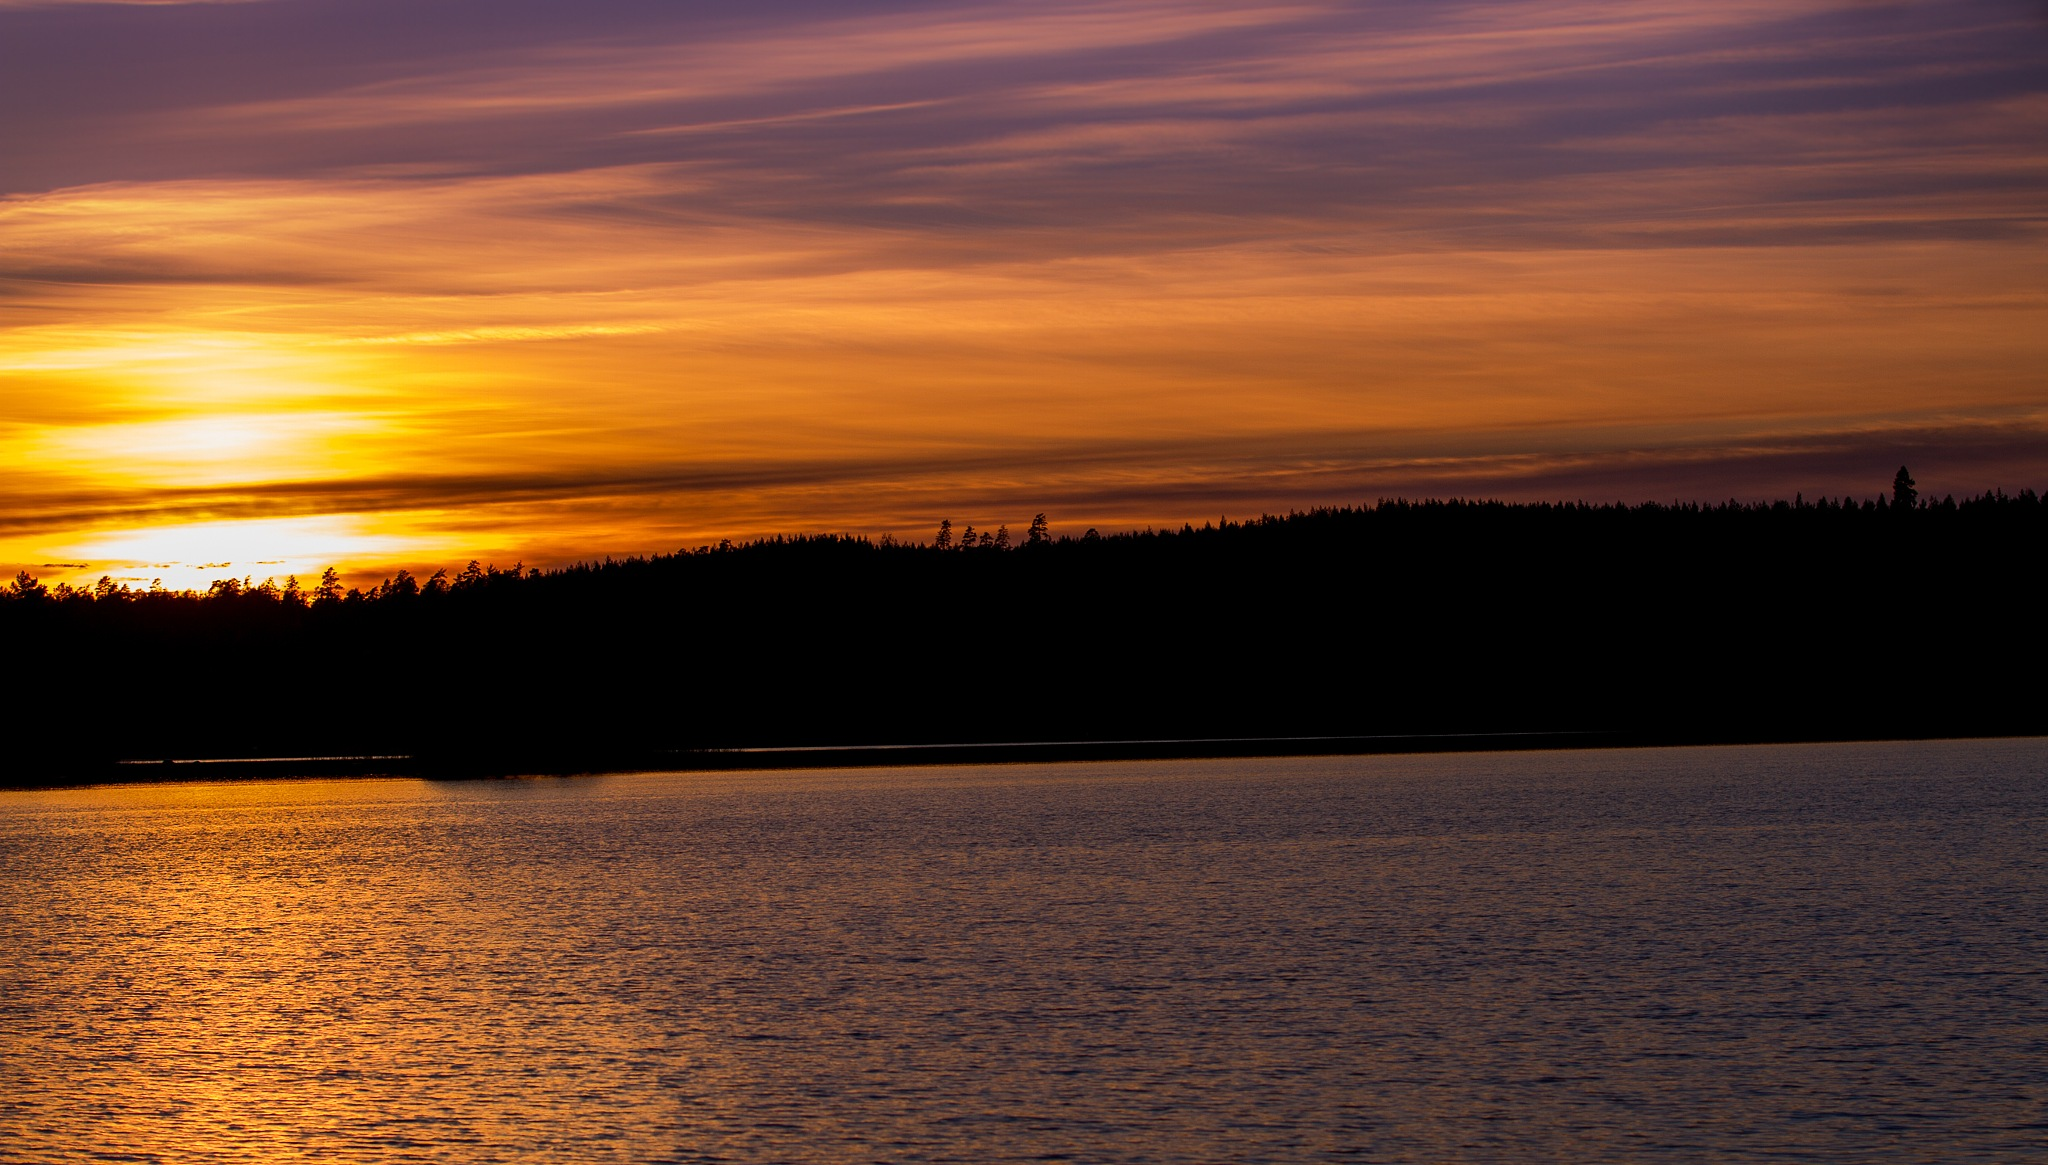 Another Beautiful Sunset in Suomi Finland by Scottmcc